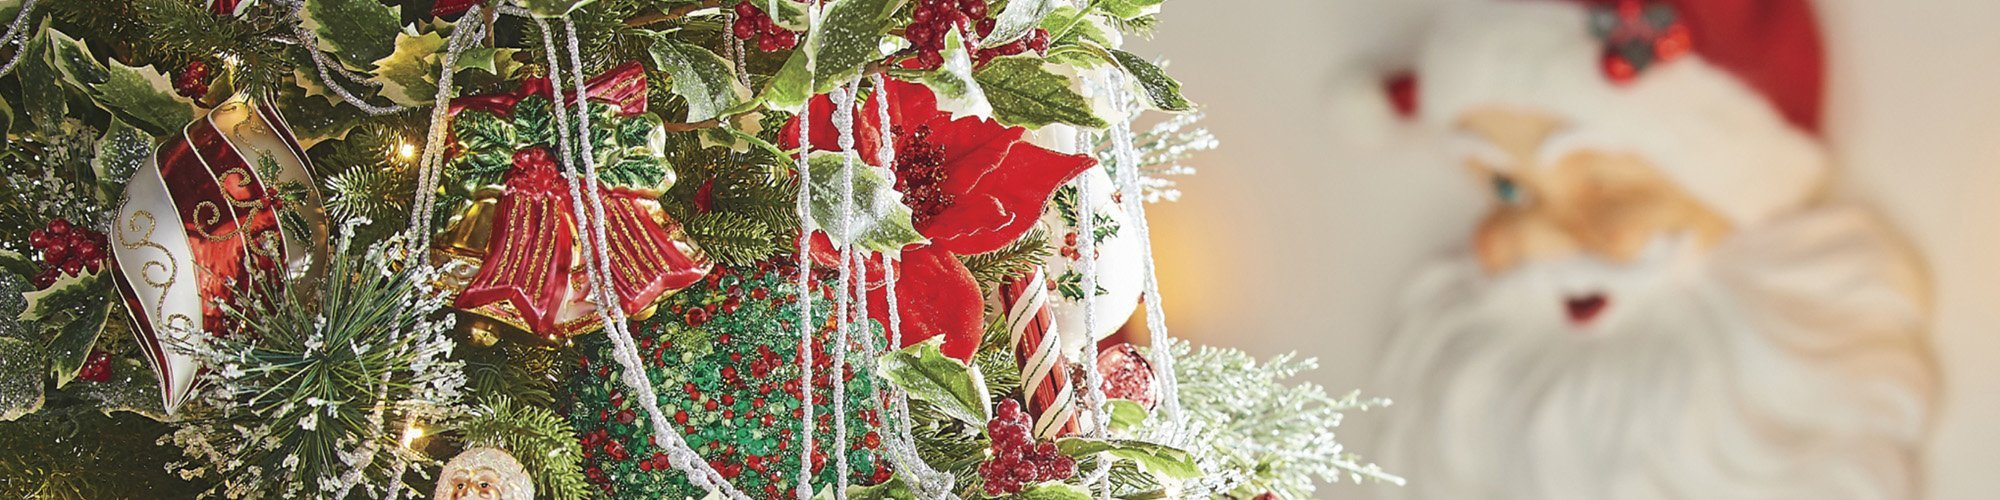 10 Essential Christmas Decorations to Make Your Home Merry and Bright